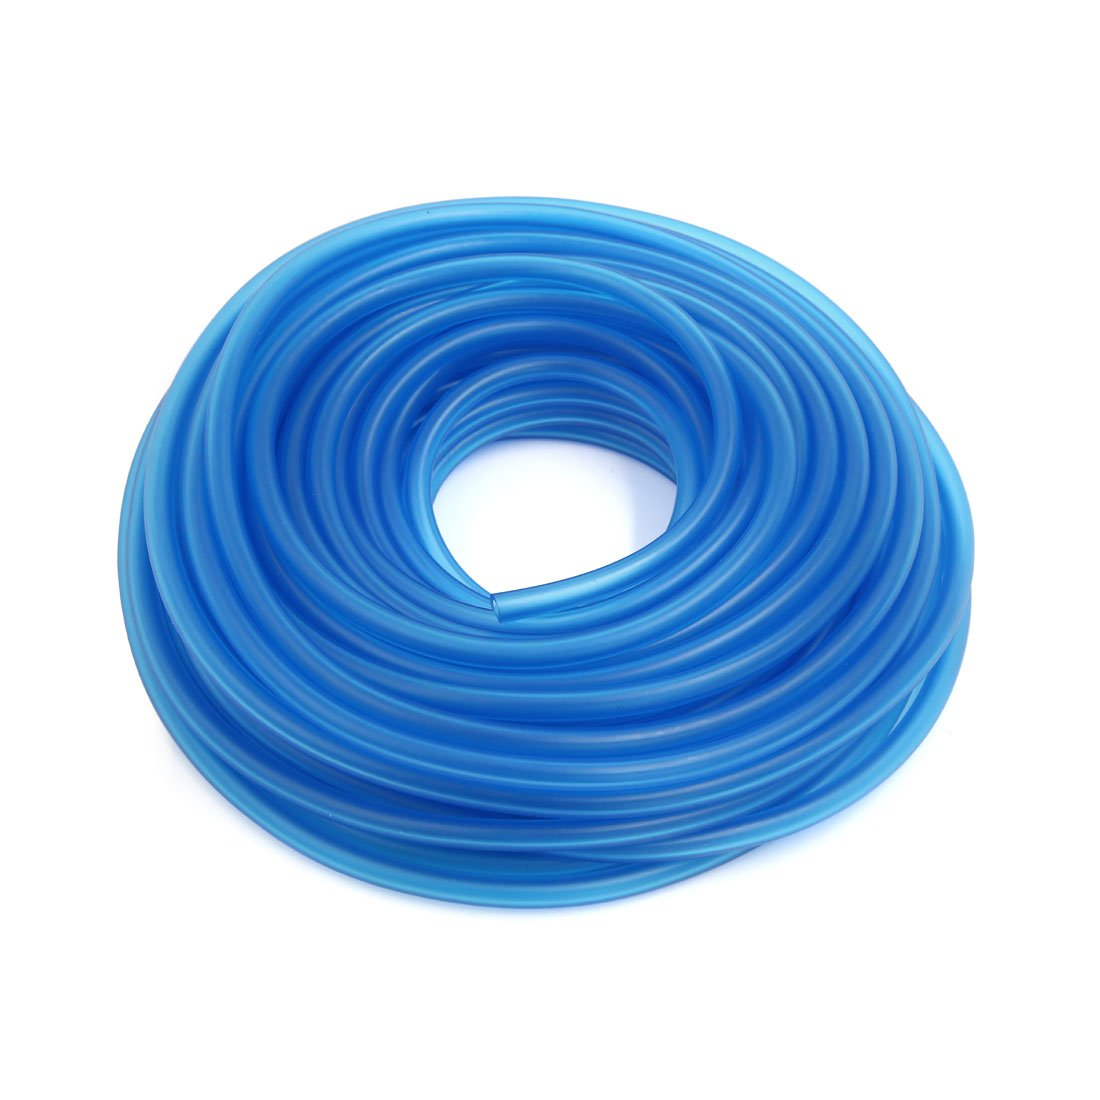 Sourcingmap 18M Length Silicone Vacuum Fuel Gas Hose Tube Pipe 4mm x 8mm for Car a16073000ux1466